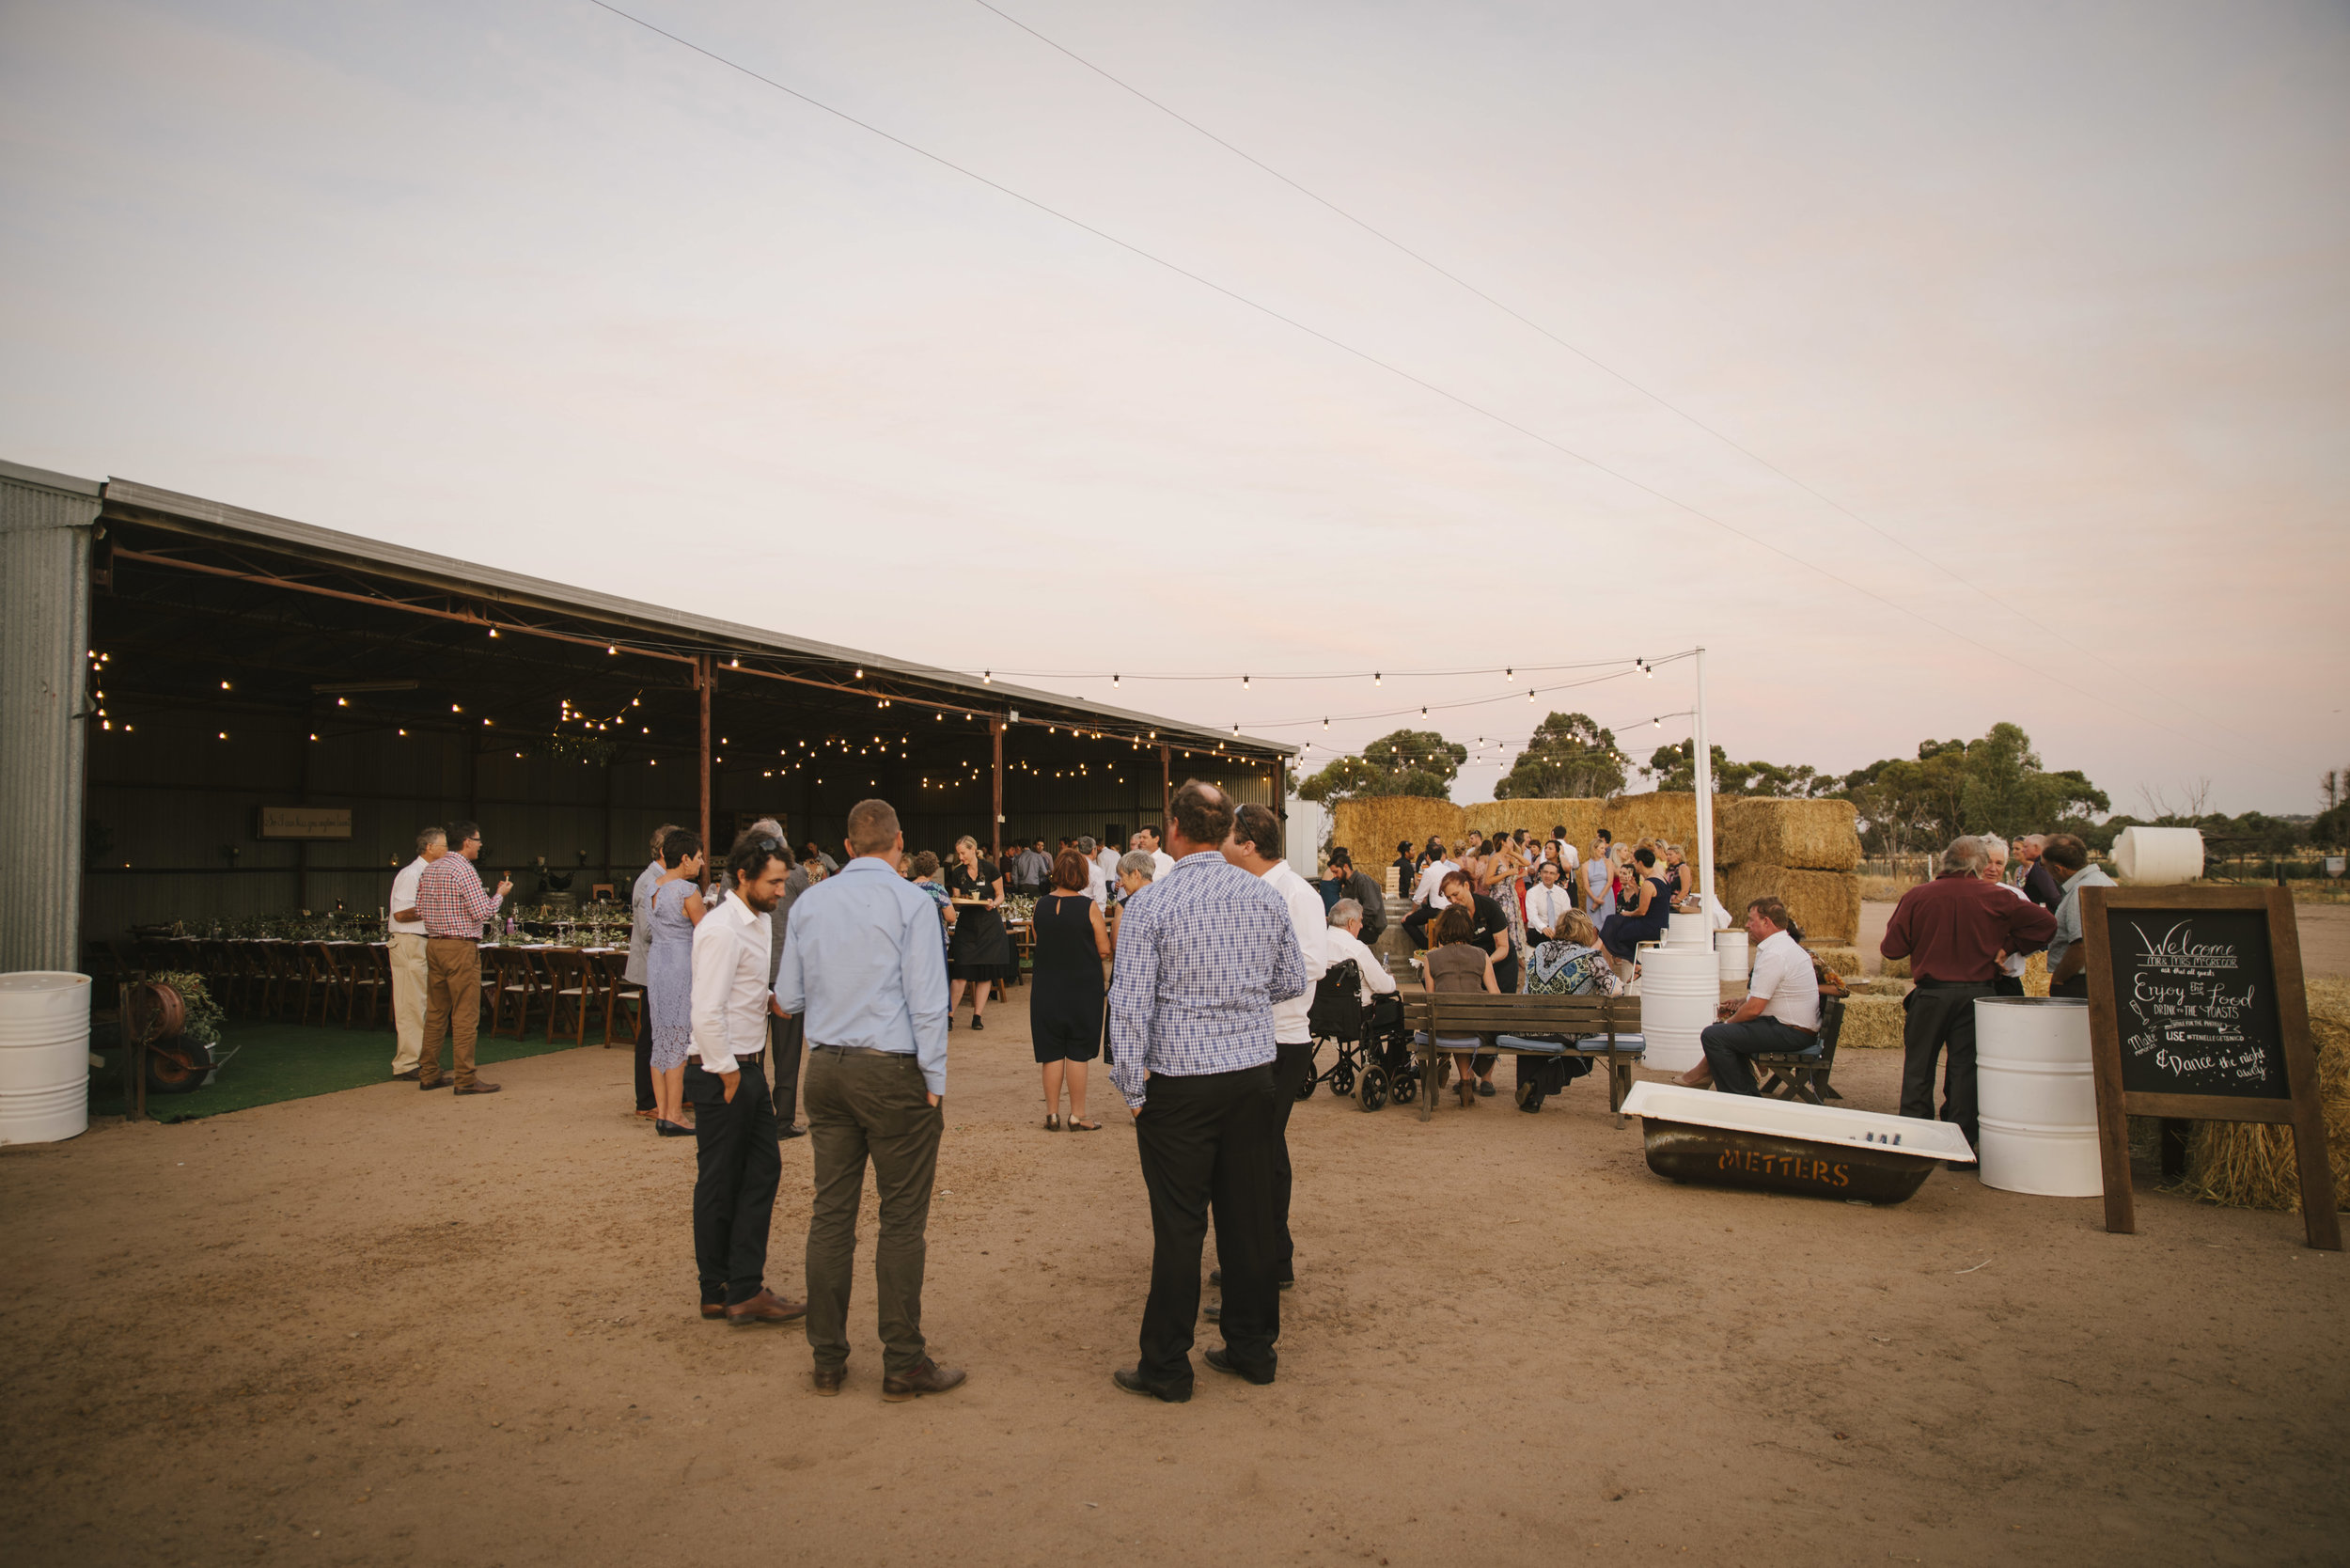 Wheatbelt Merredin Rustic Rural Farm Wedding (66).jpg